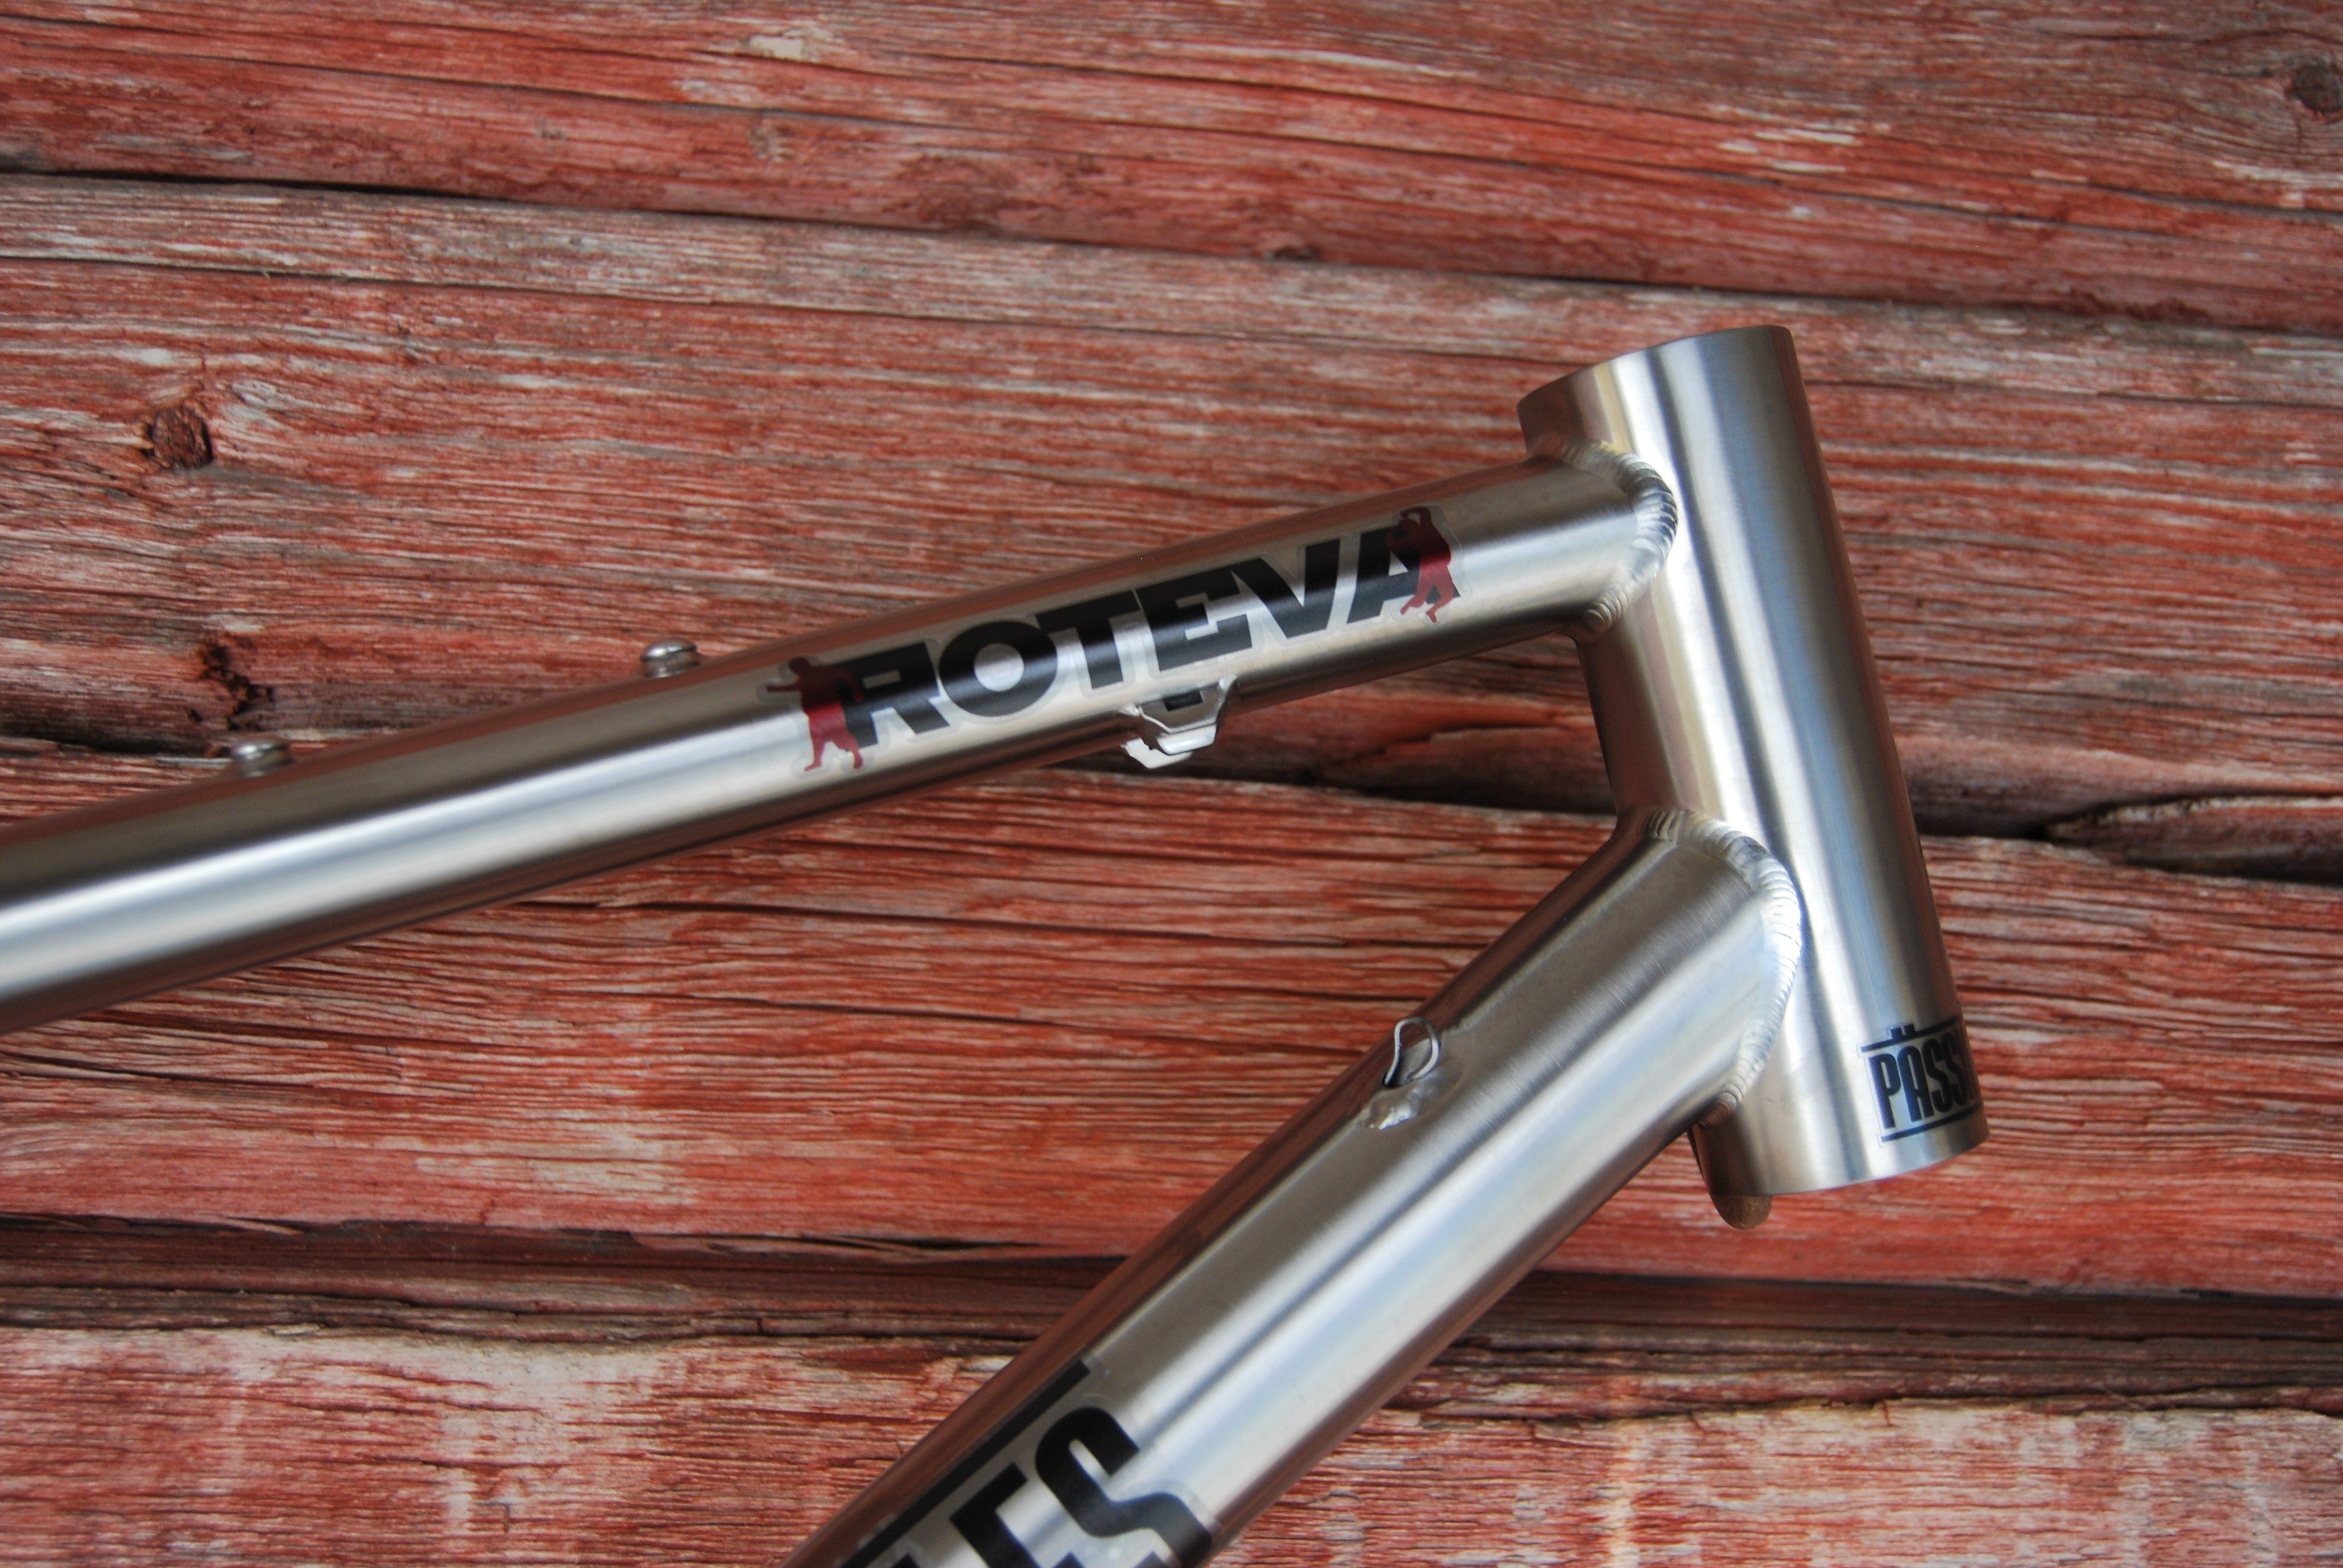 Roteva Titanium Adventure and Bikepacking Frame